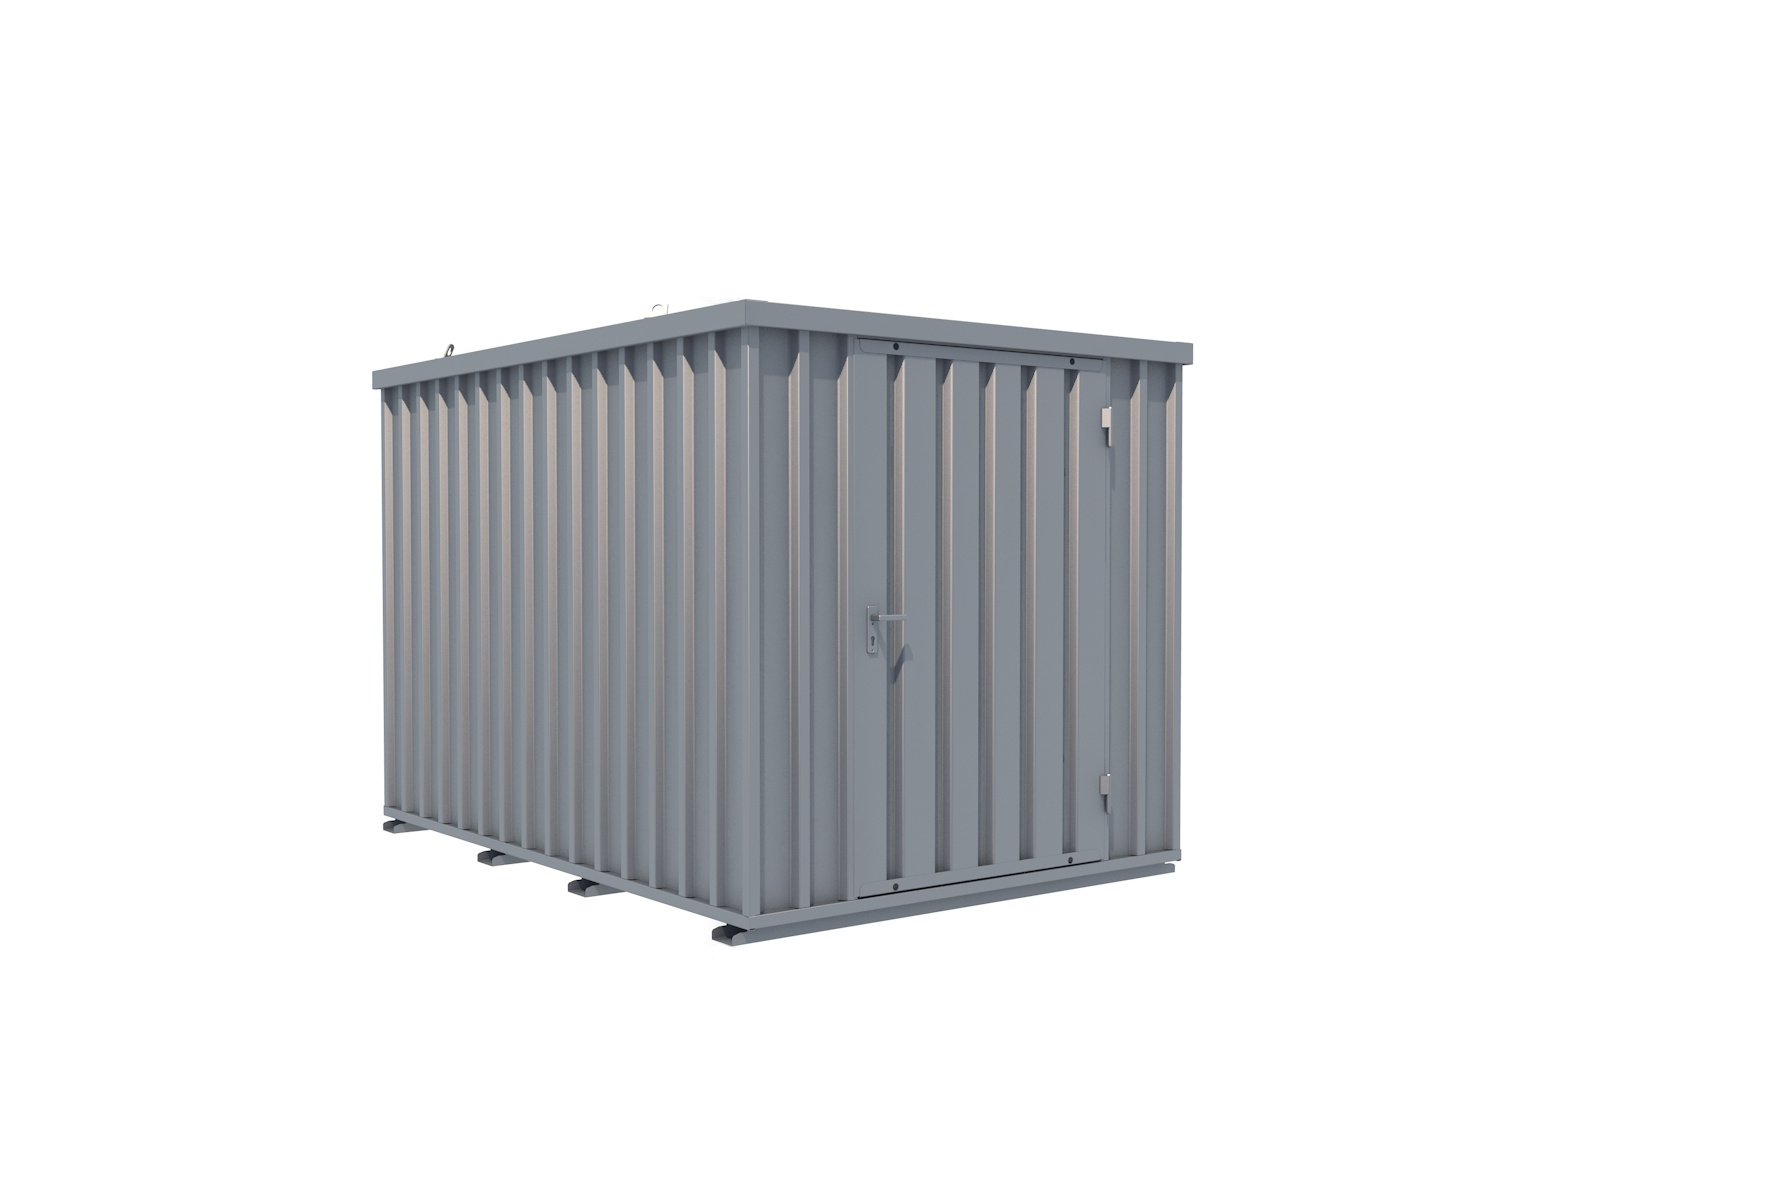 Lagercontainer / Schnellbaucontainer hohe Ausführung